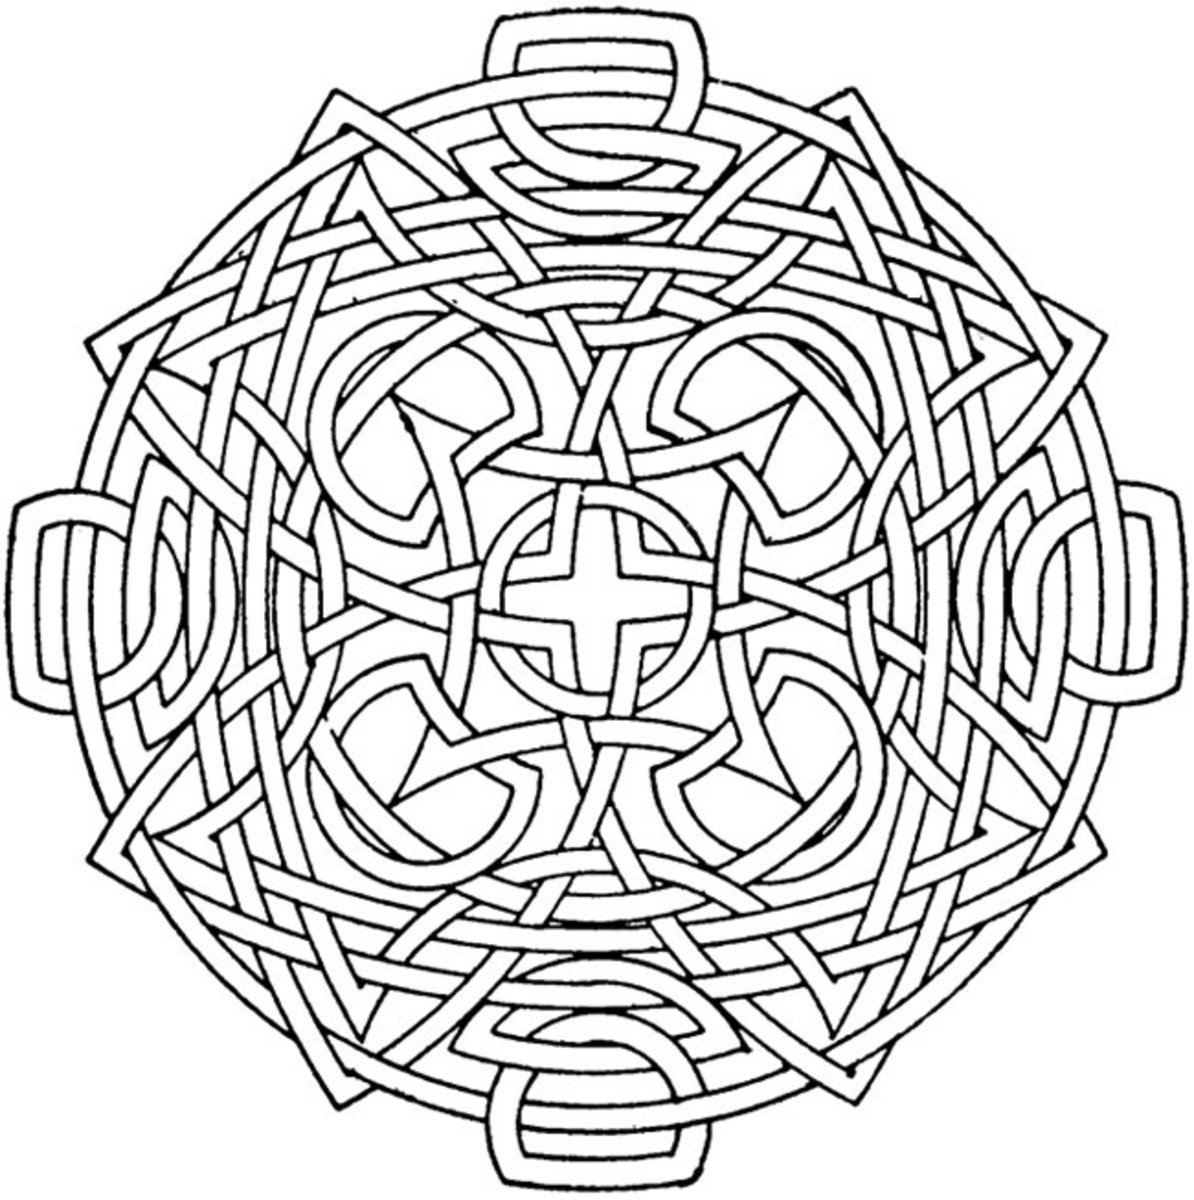 Circular Mandala Coloring Pages Free Colouring Pictures to Print